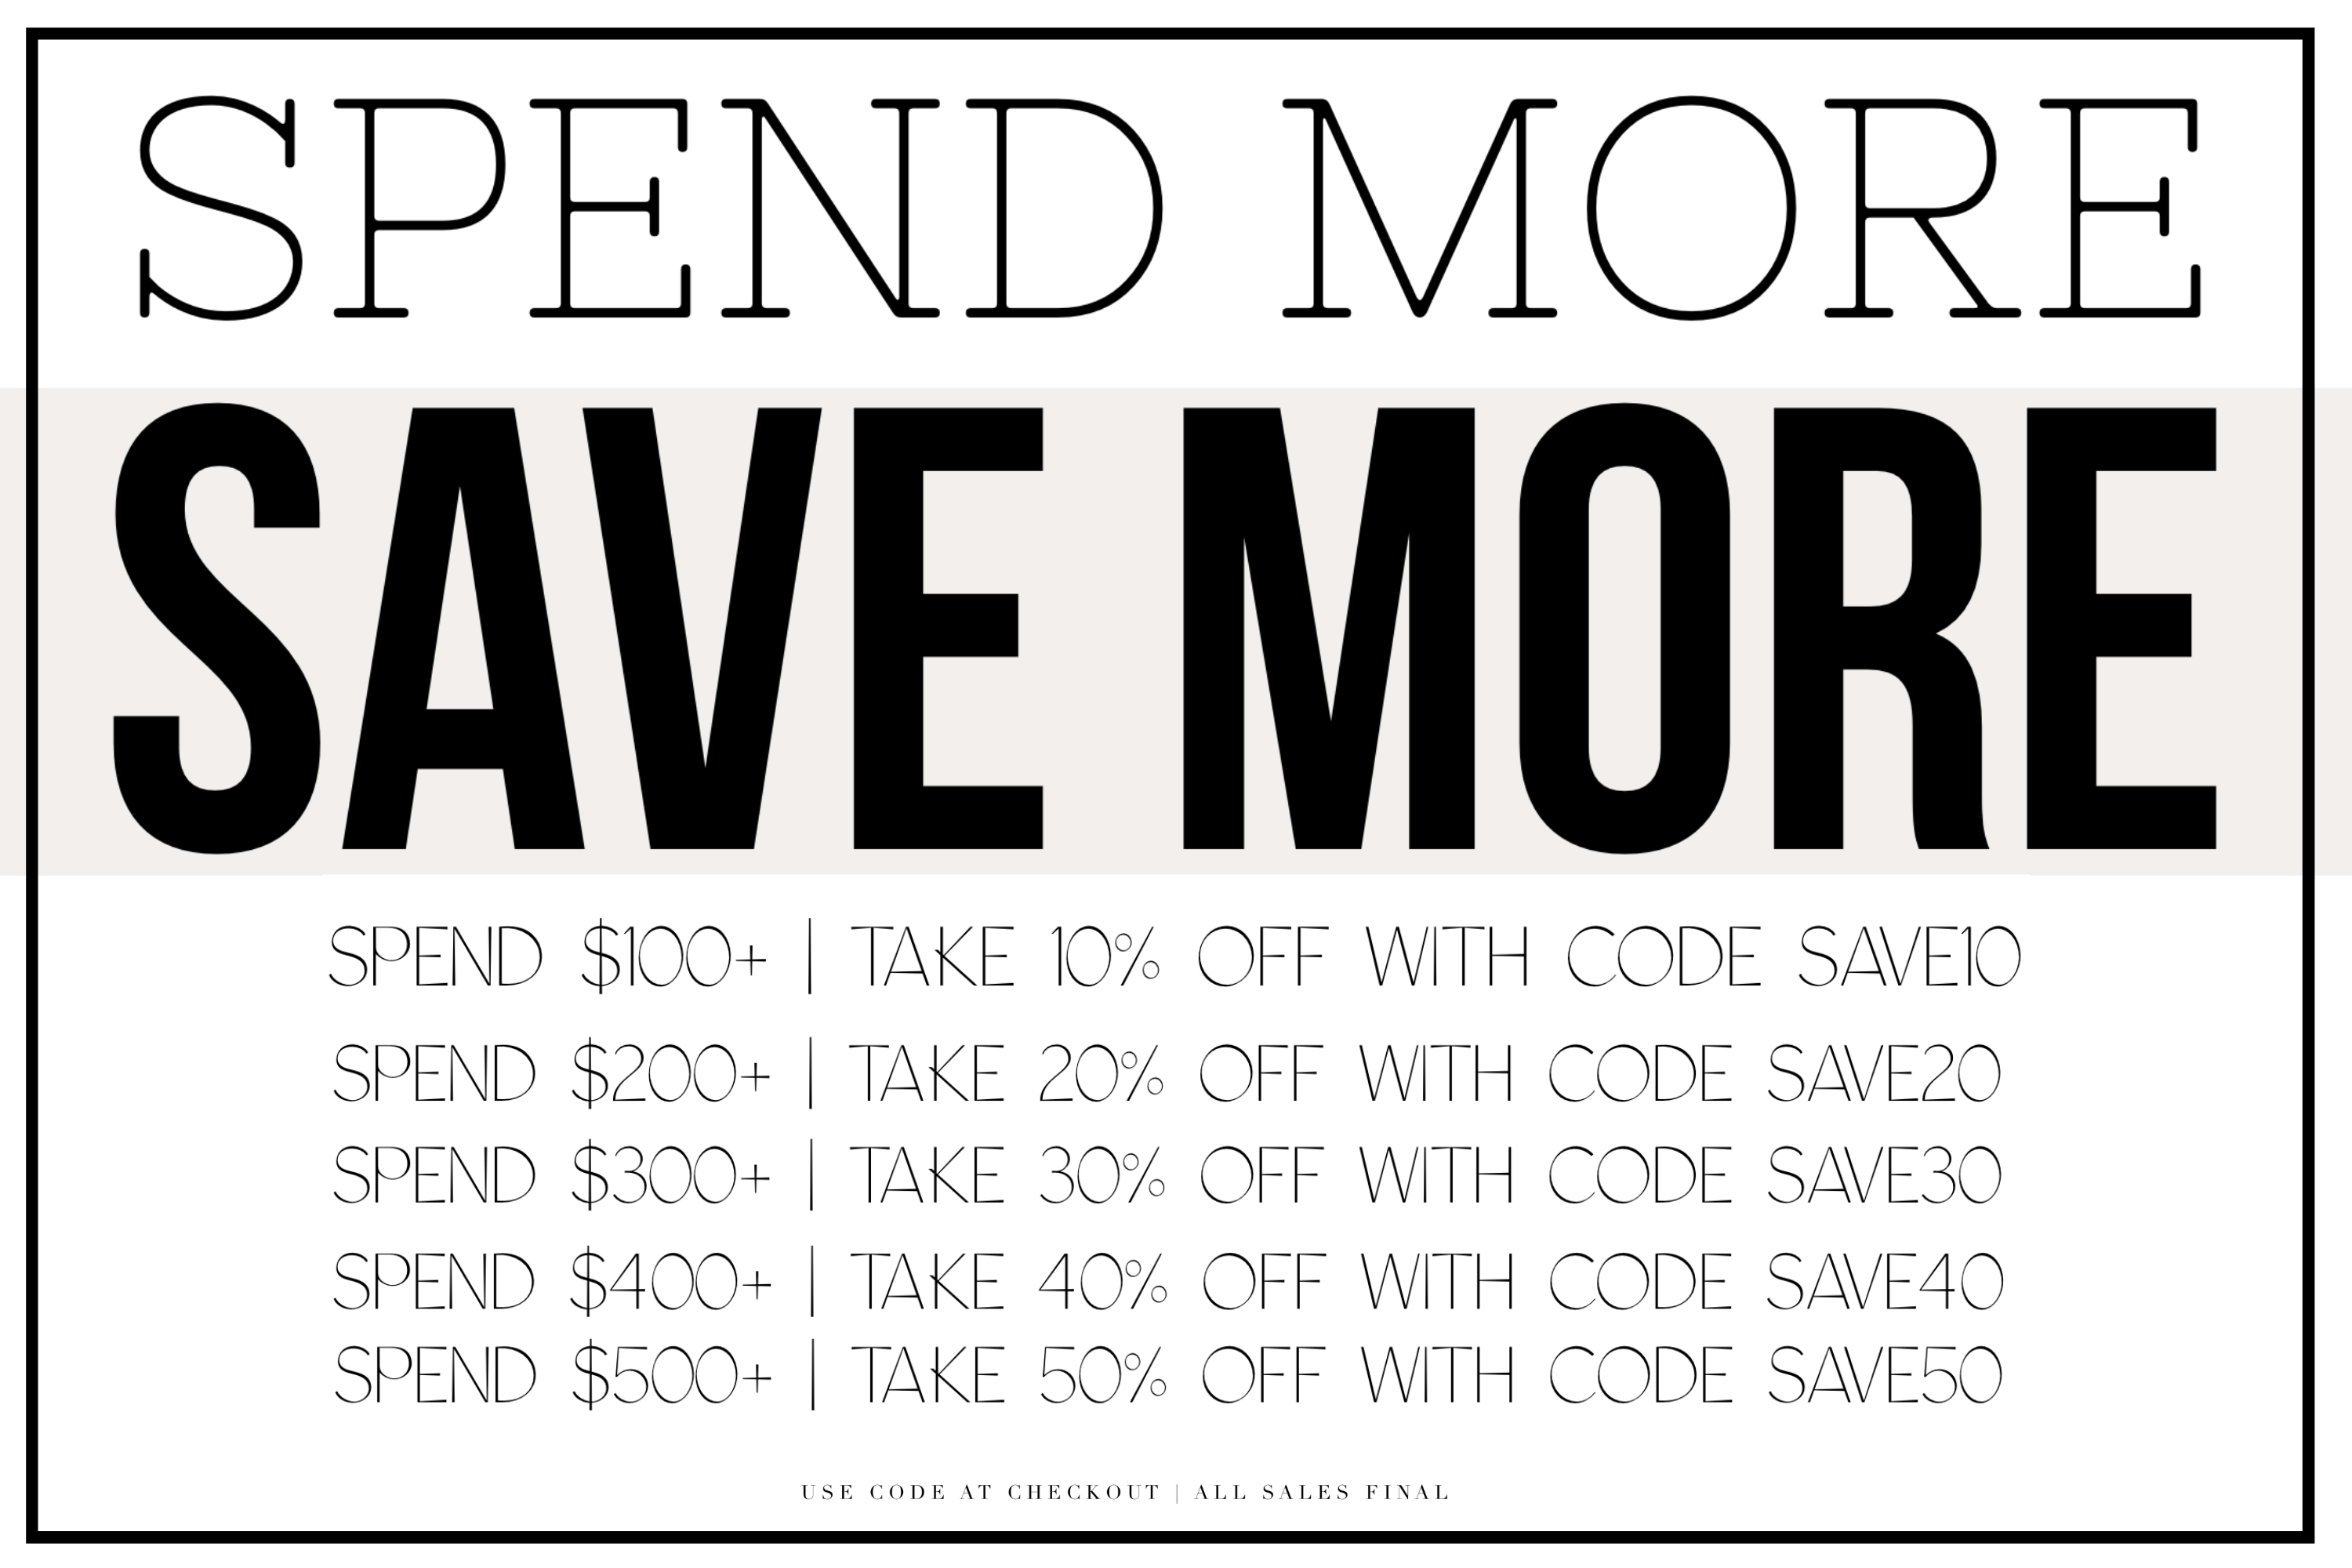 Spend More, Save More Banner